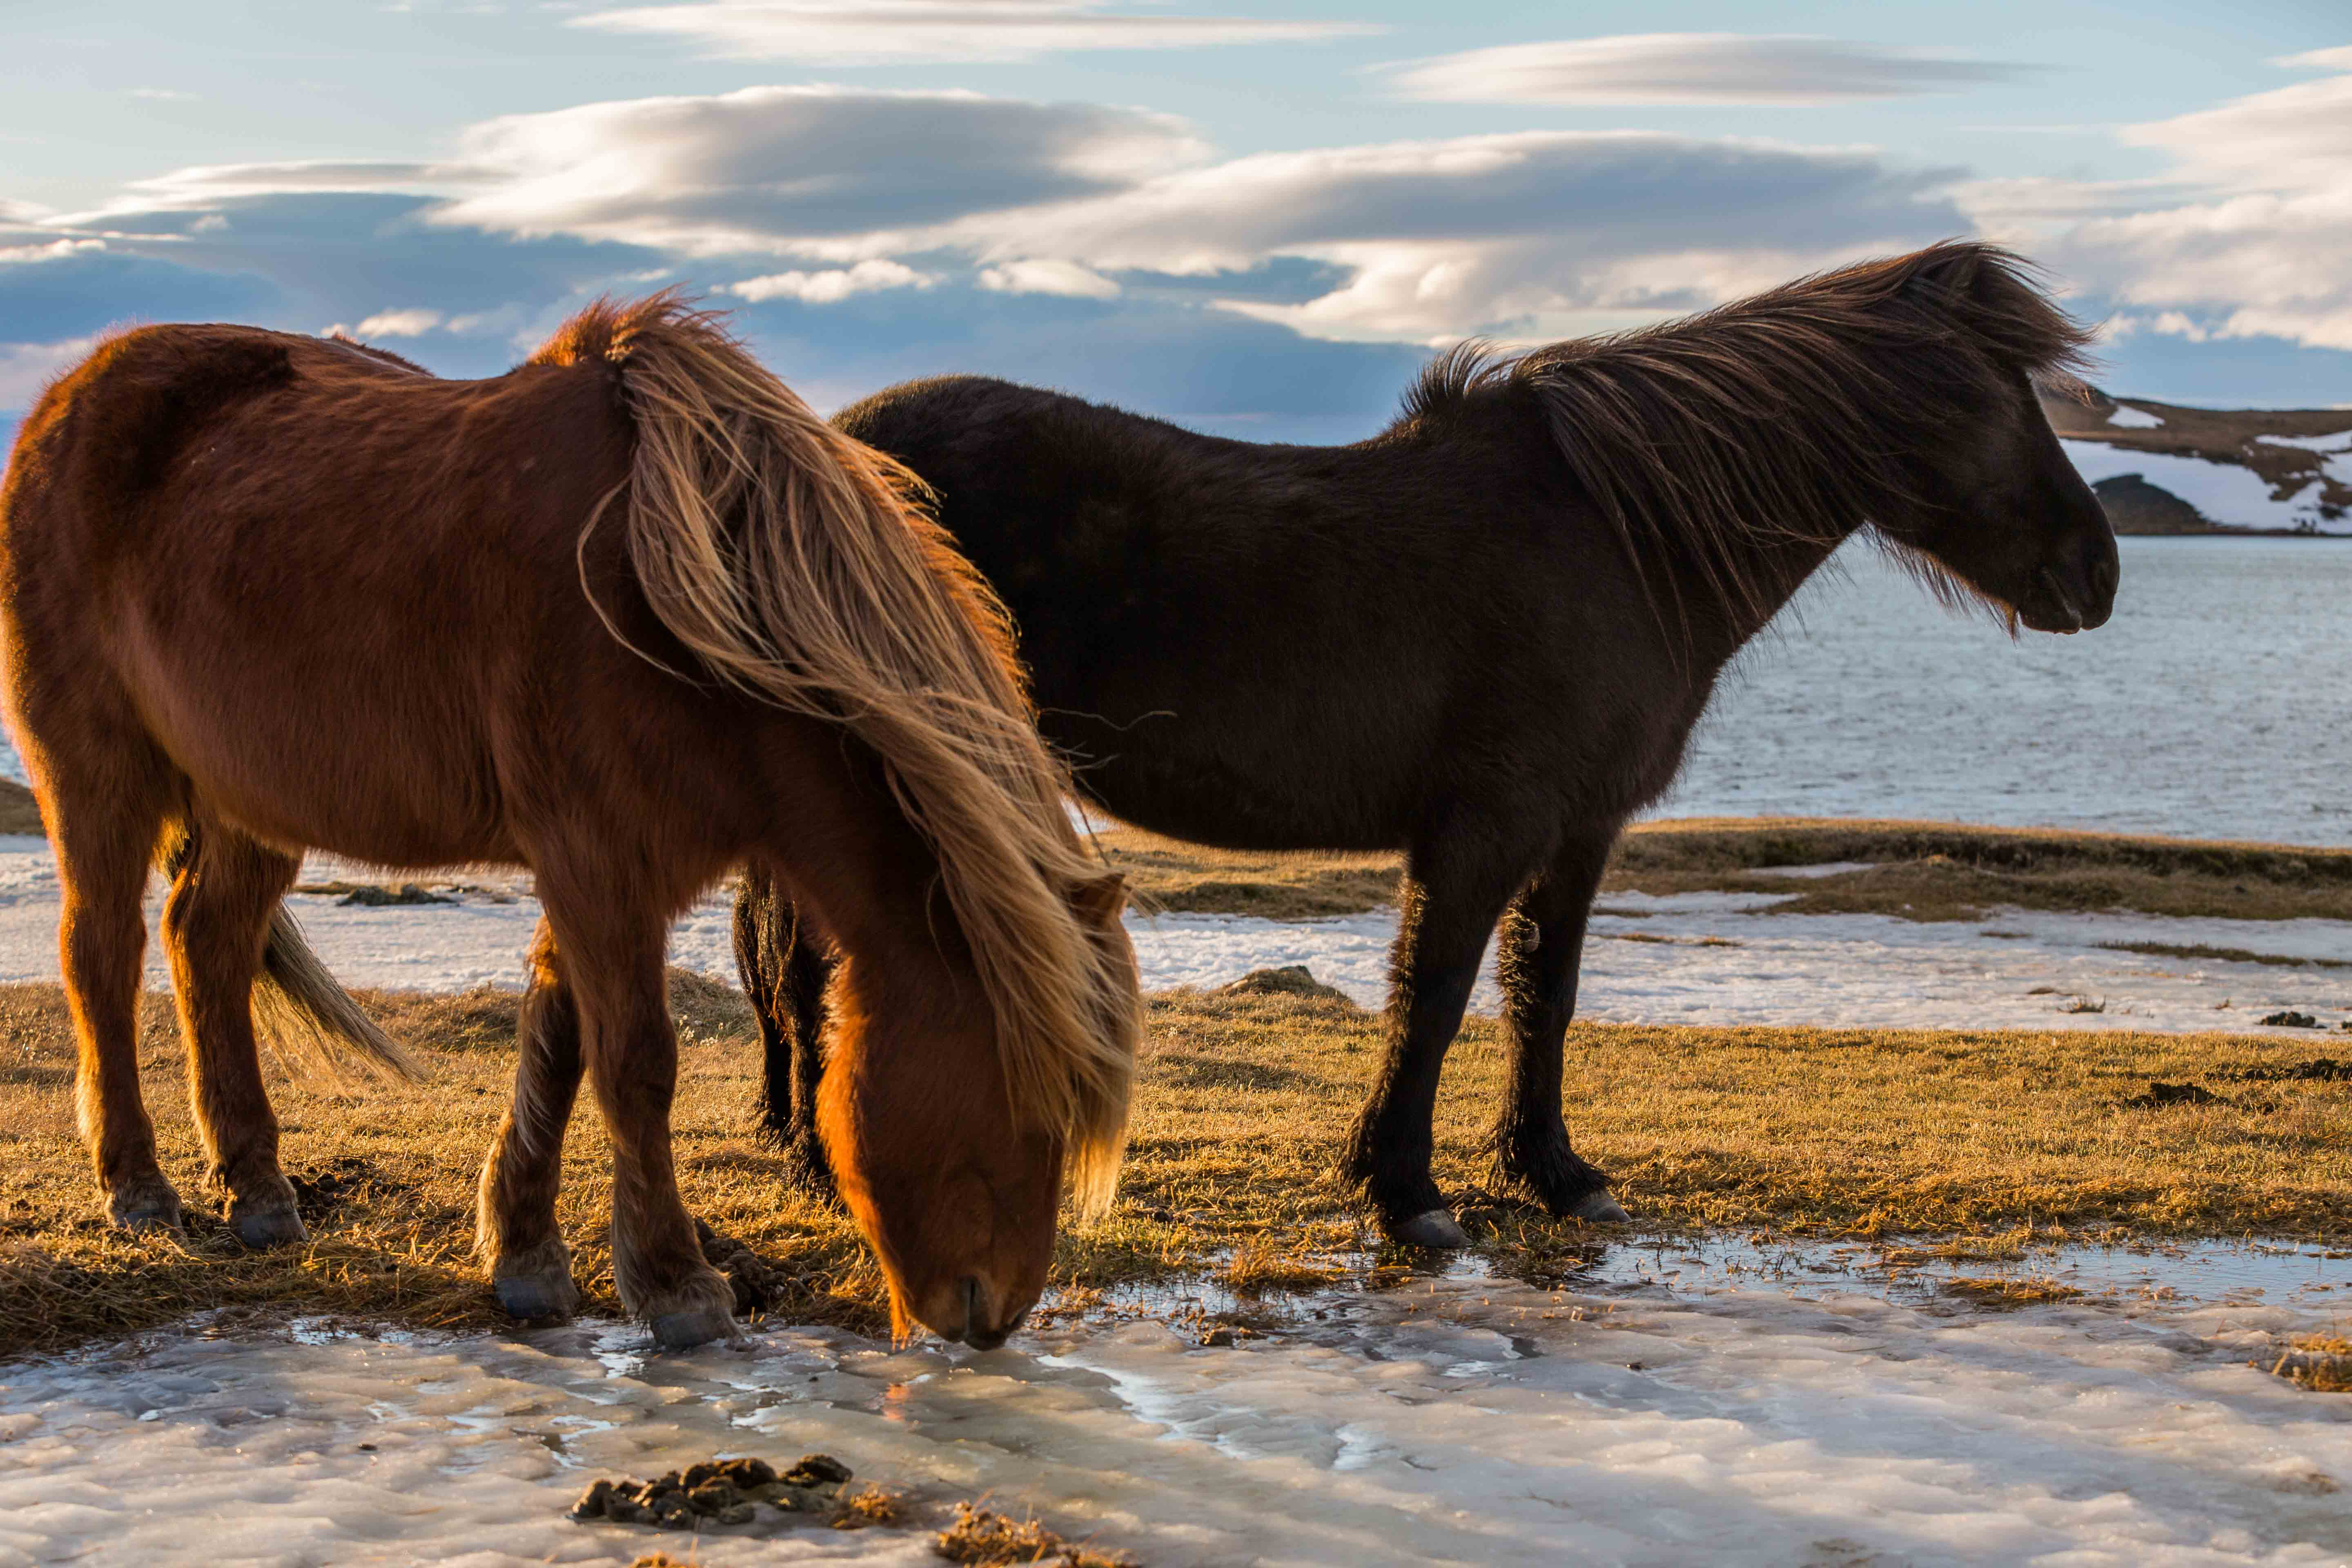 Two horses in the sunset. The ancient Scandinavian horse, here represented by the Icelandic horse of today. | Photo by Jamen Percy - adobe stock - copyright.